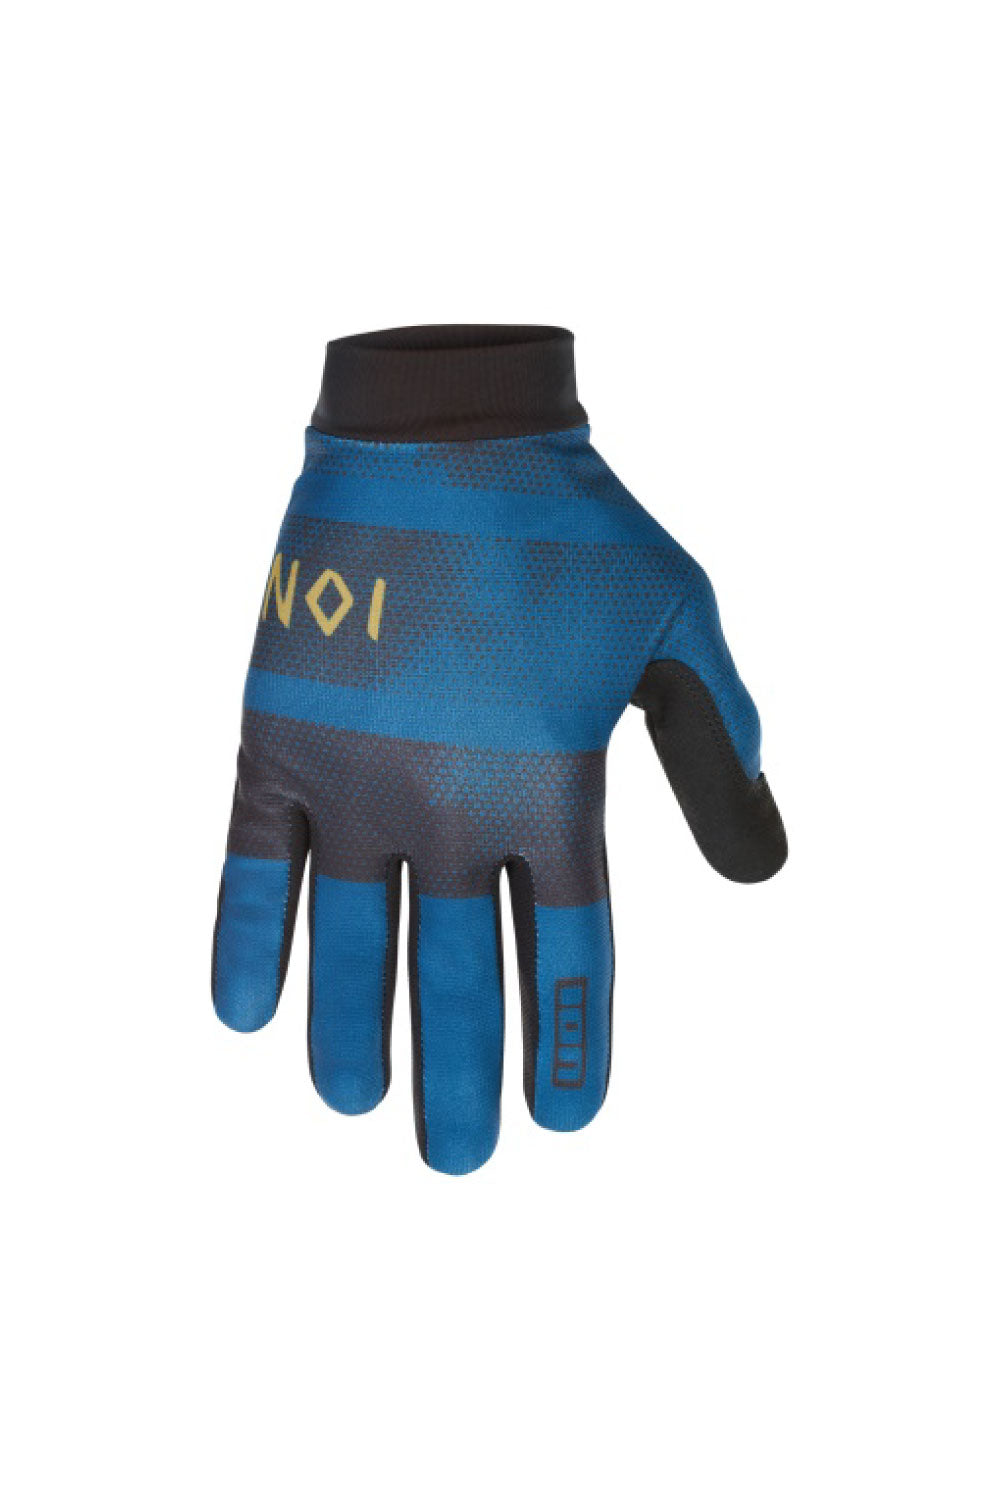 ION 2020 Scrub MTB Gloves